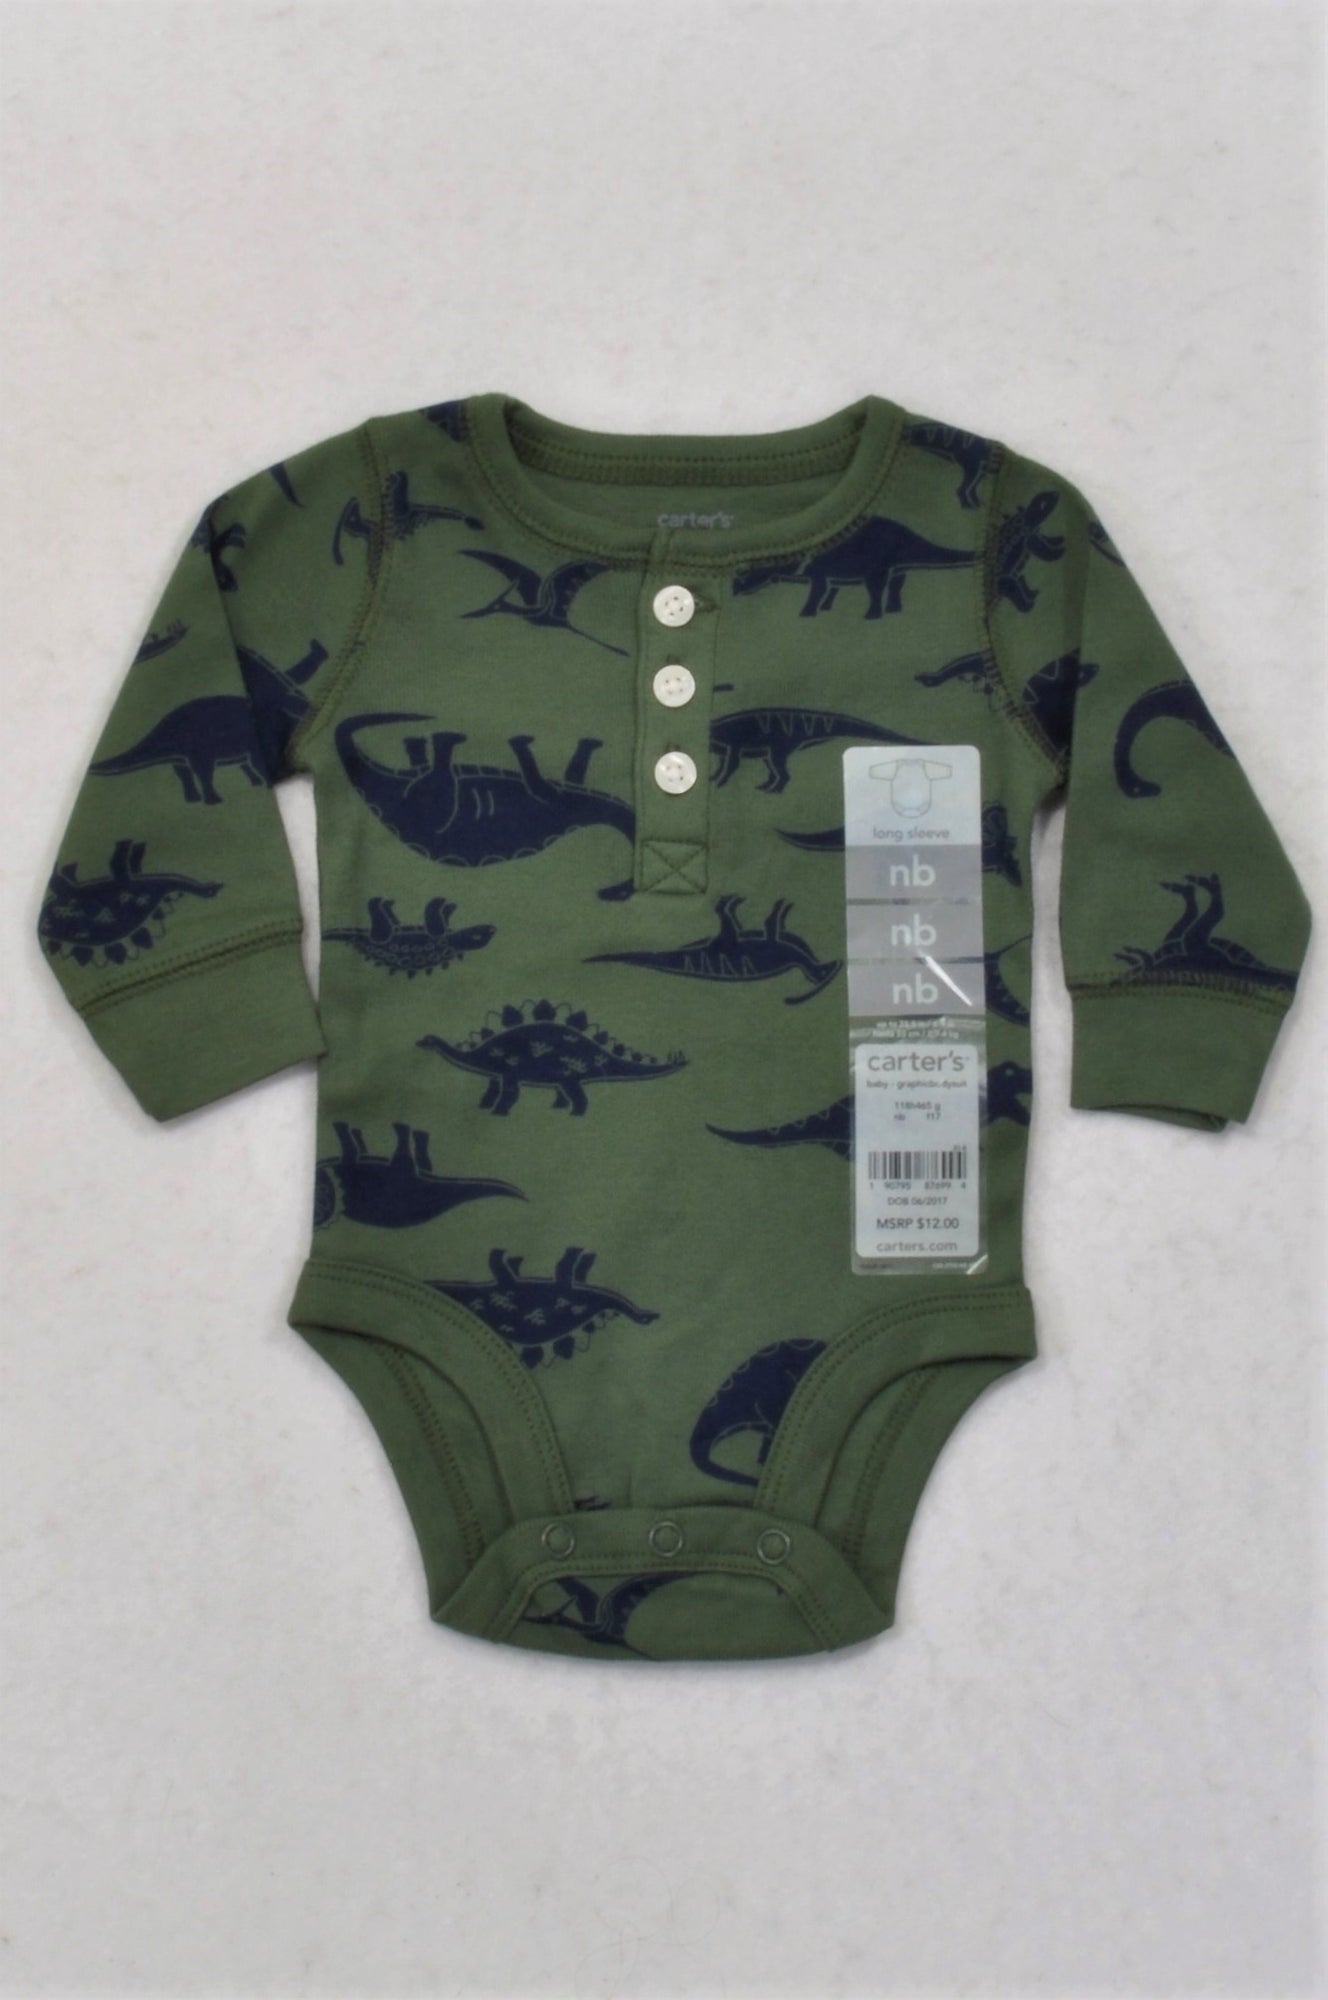 f9e41daa25d6 New Carter s Olive   Navy Dino Graphic Baby Grow Boys N-B – Once More